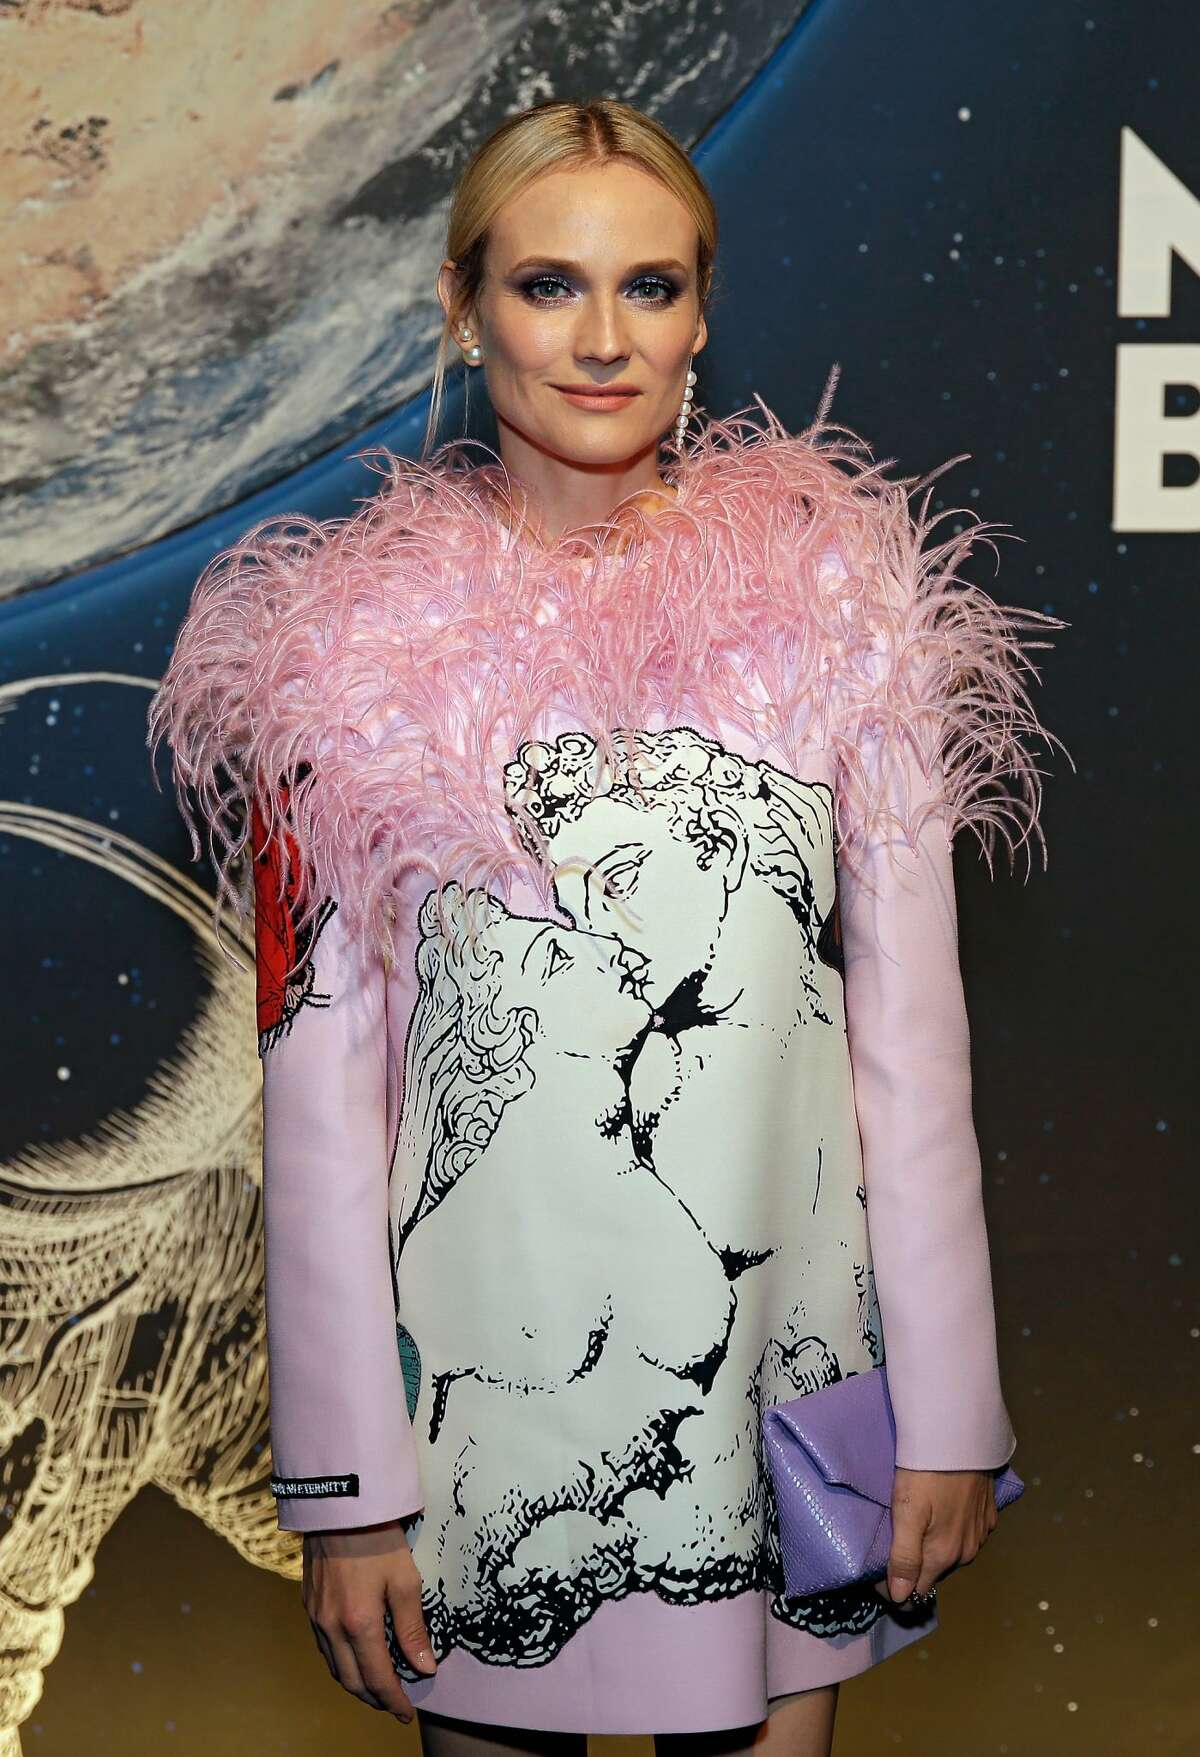 Diane Kruger at the Montblanc StarWaker Event celebrating the 50th anniversary of the moon landing at the Lone Star Flight Museum.